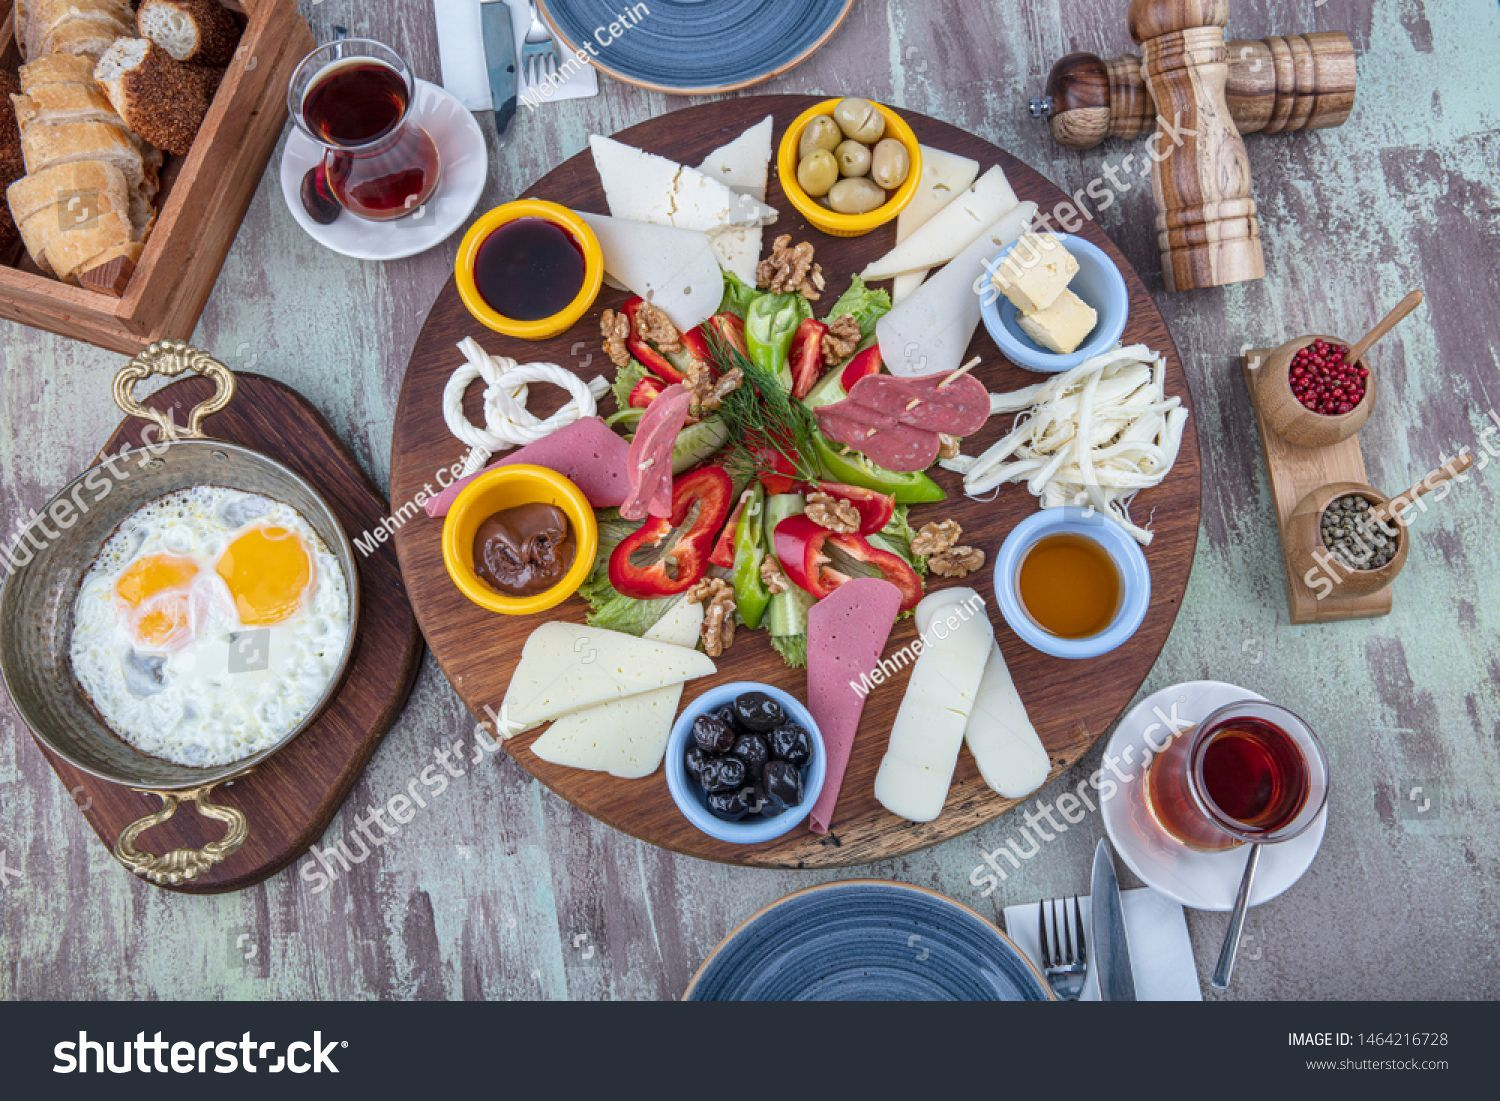 Rich Delicious Traditional Turkish Breakfast On Stock Photo (Edit Now) 1464216728 #turkishbreakfast Rich and delicious traditional Turkish breakfast on a laid table. Spreader breakfast for two. #Sponsored , #ad, #traditional#Turkish#Rich#delicious #turkishbreakfast